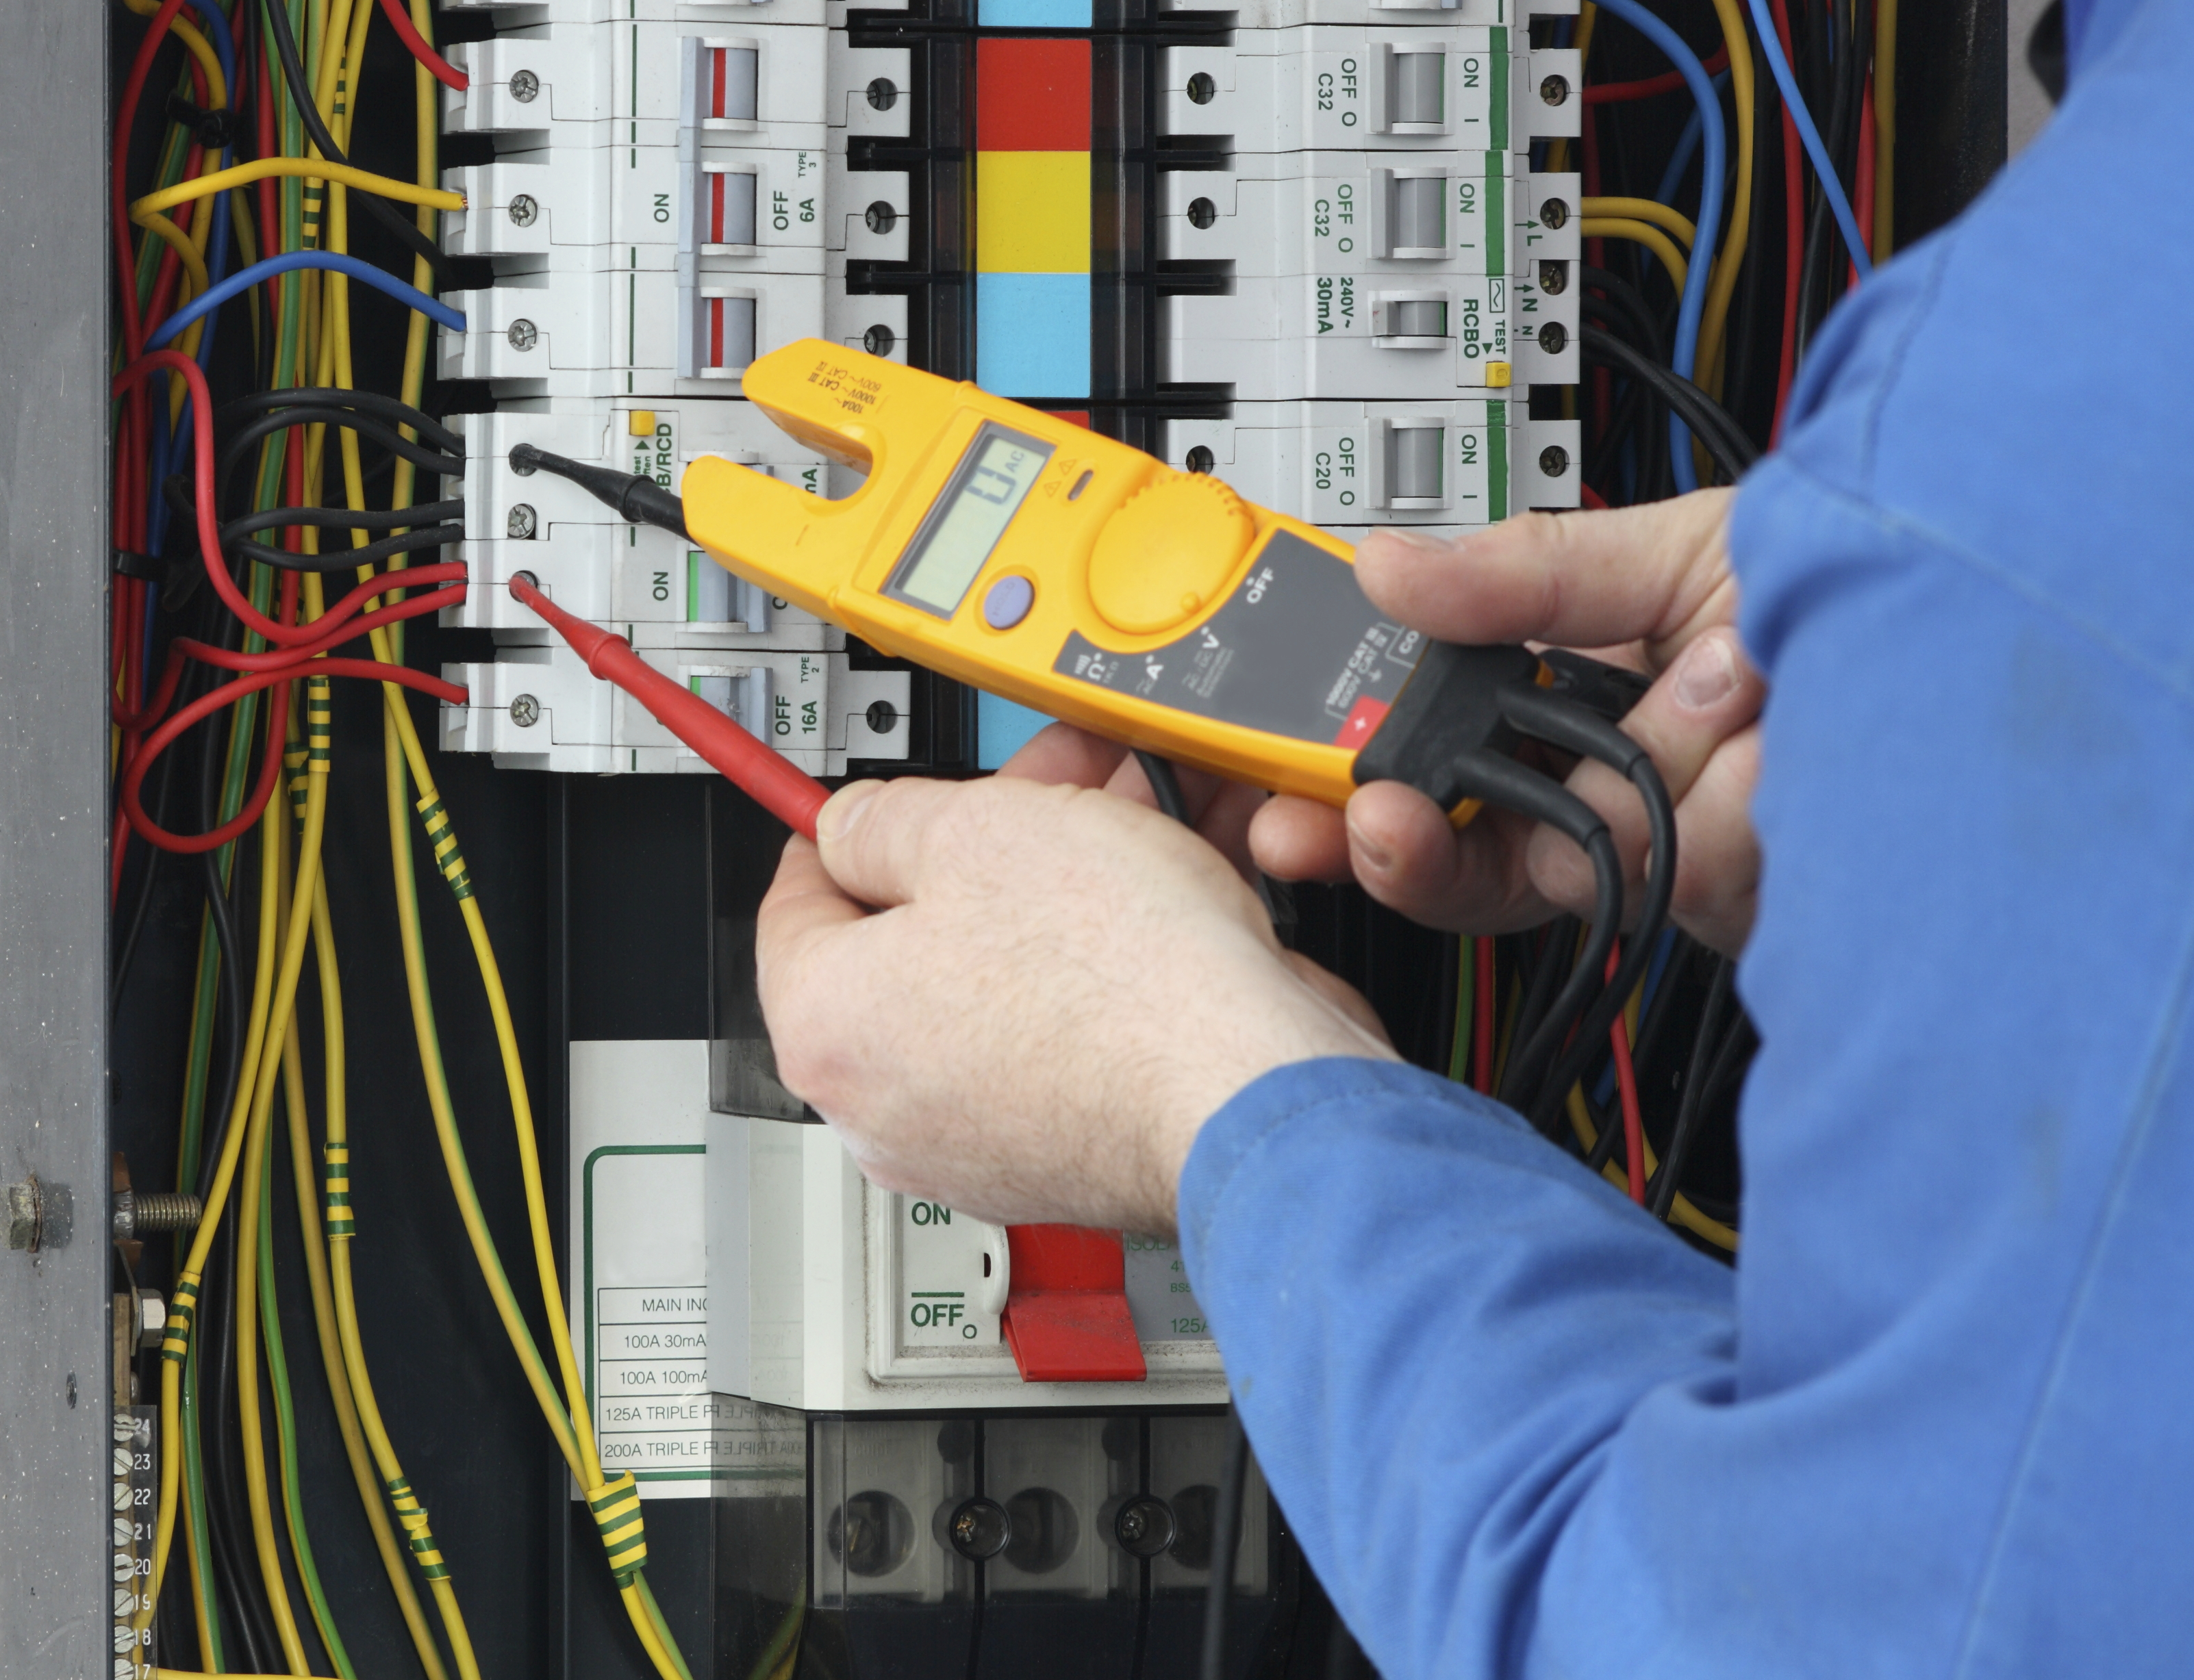 Electrical Home Repairs - Trusted Tra on electrical cables, electrical energy, electric motor, electrical diagrams, electrical engineering, electrical contracting, electrical fuses, wiring diagram, electrical shocks, electrical volt, electrical fire, electrical grounding, national electrical code, ground and neutral, power cable, distribution board, electrical circuits, electrical cord, electrical wire, knob and tube wiring, electrical conduit, electrical technology, alternating current, electric power transmission, electrical box, junction box, electrical equipment, electrical repair, electrical tools, circuit breaker, electrical receptacle types, three-phase electric power, extension cord, earthing system,